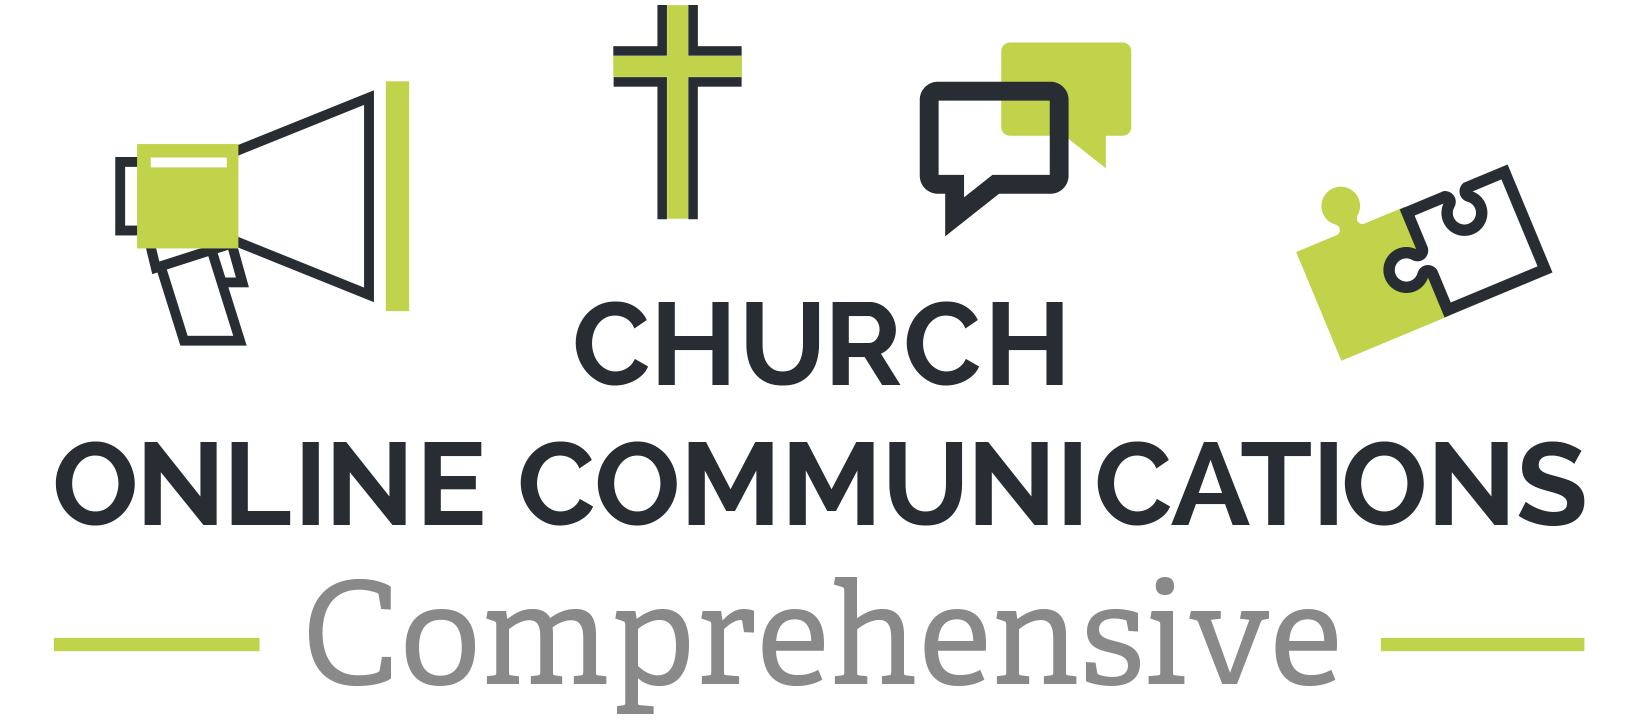 Church Online Communications Comprehensive